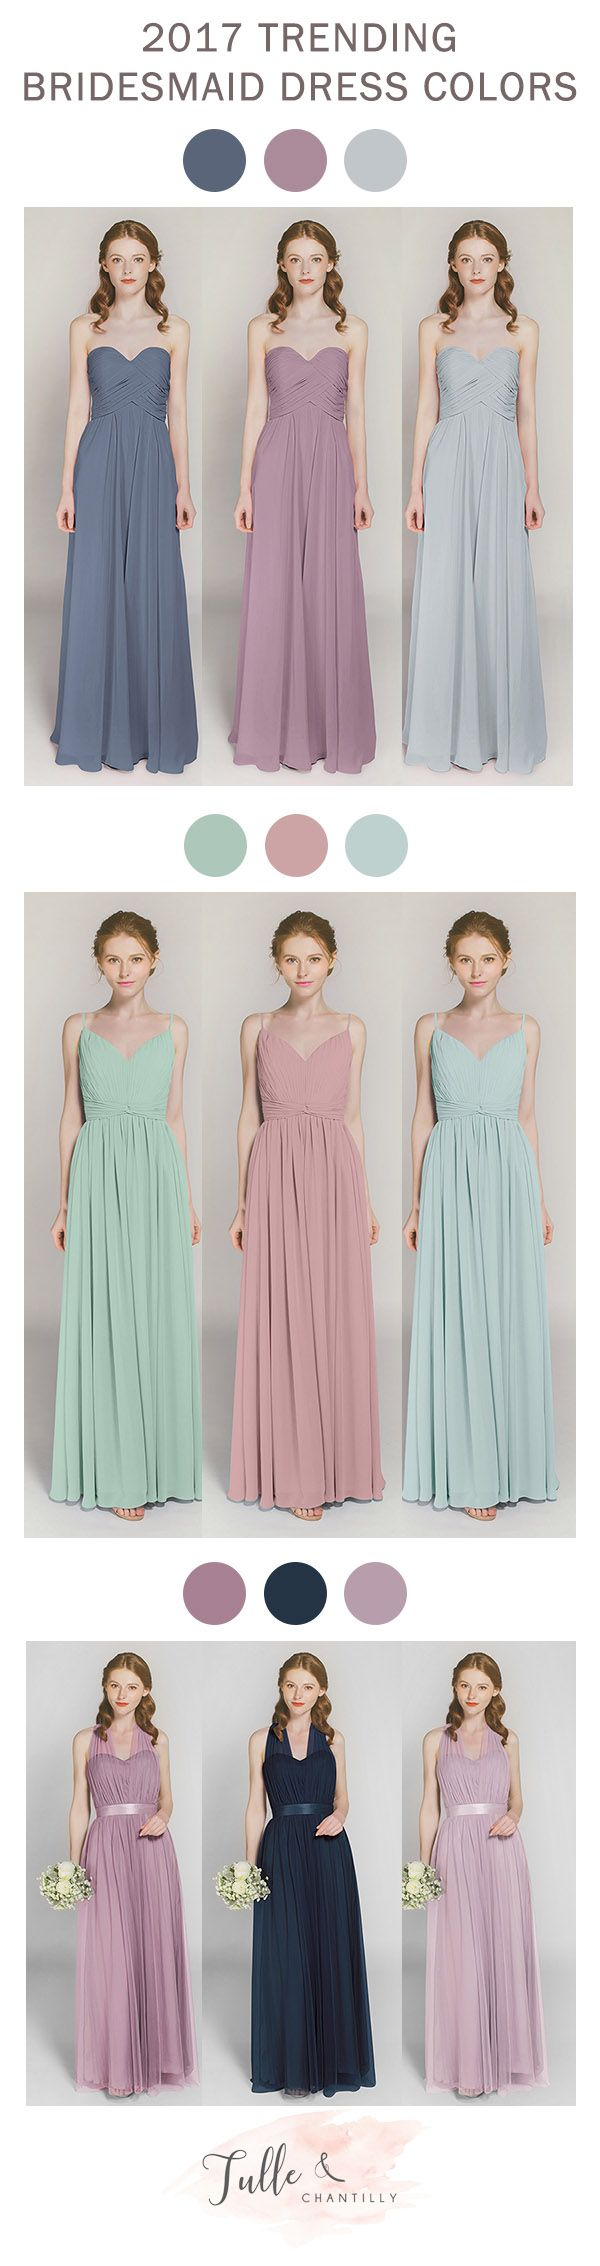 bridesmaid dress colors for wedding trends 2017